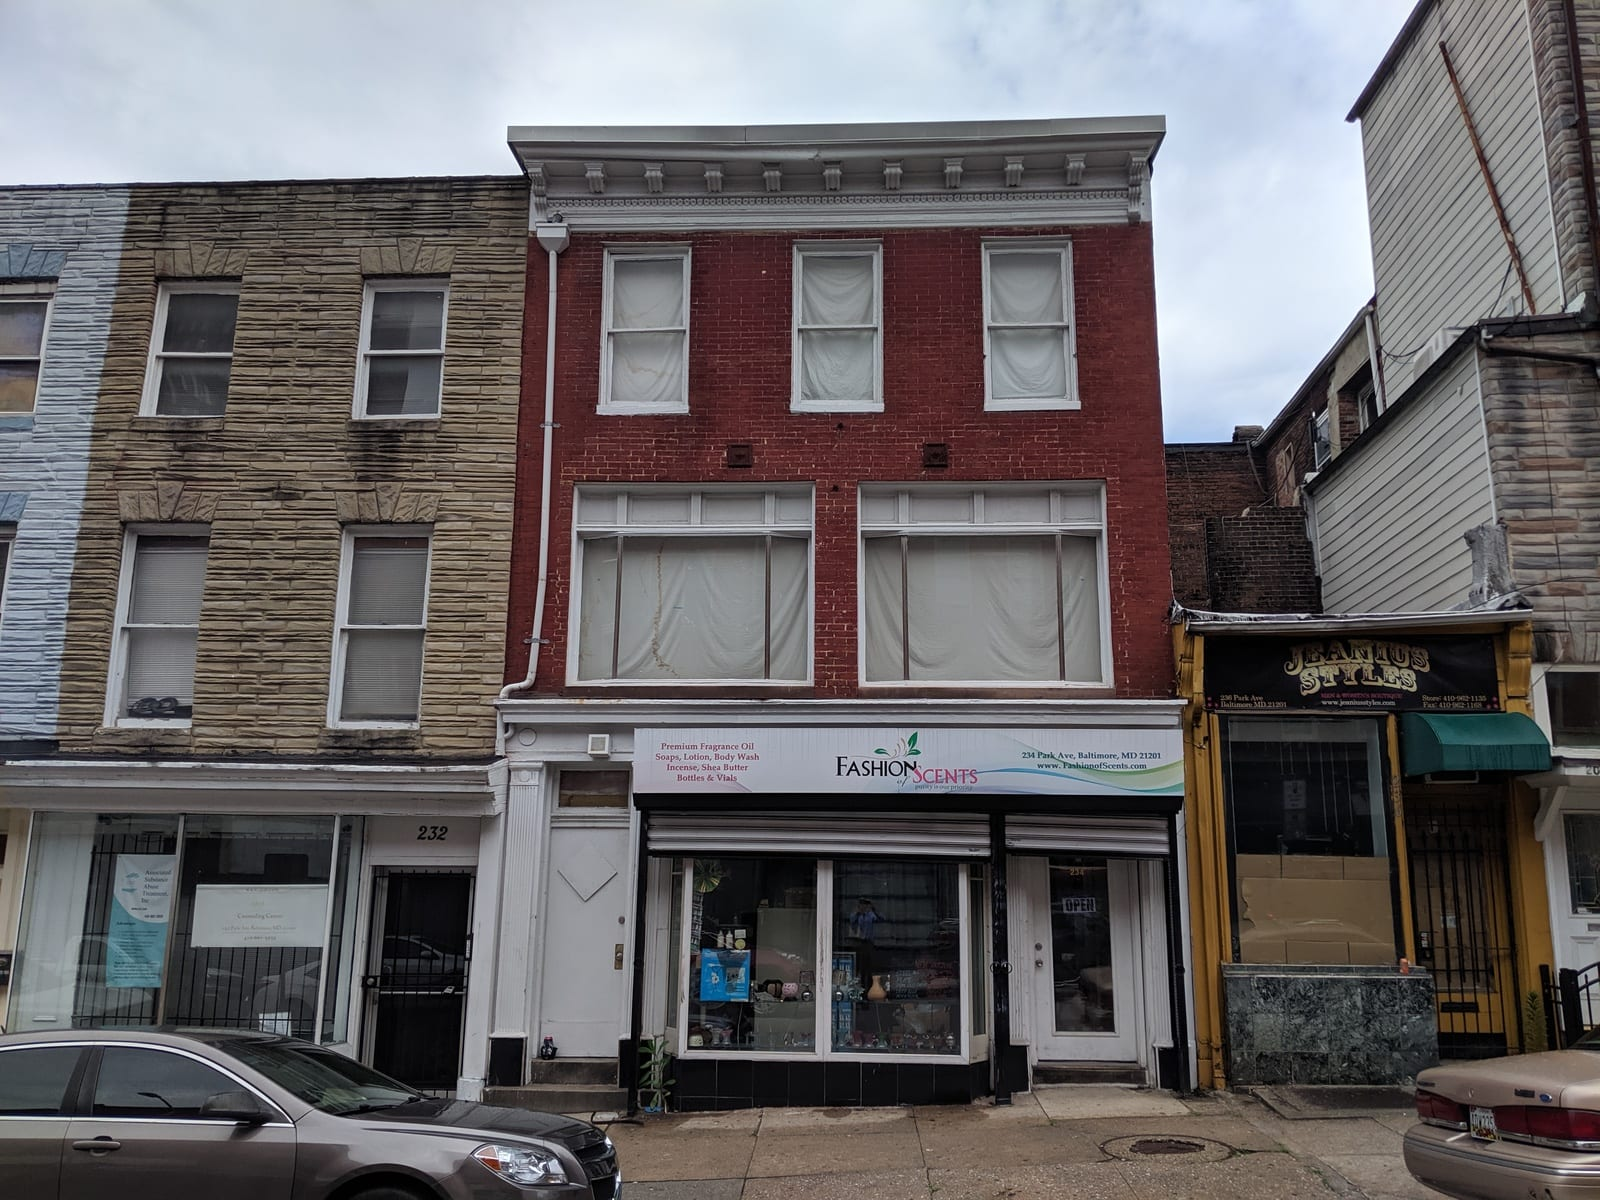 234 Park Ave:  Retail Store plus Value-Add Opportunity to Renovate Upper Floors